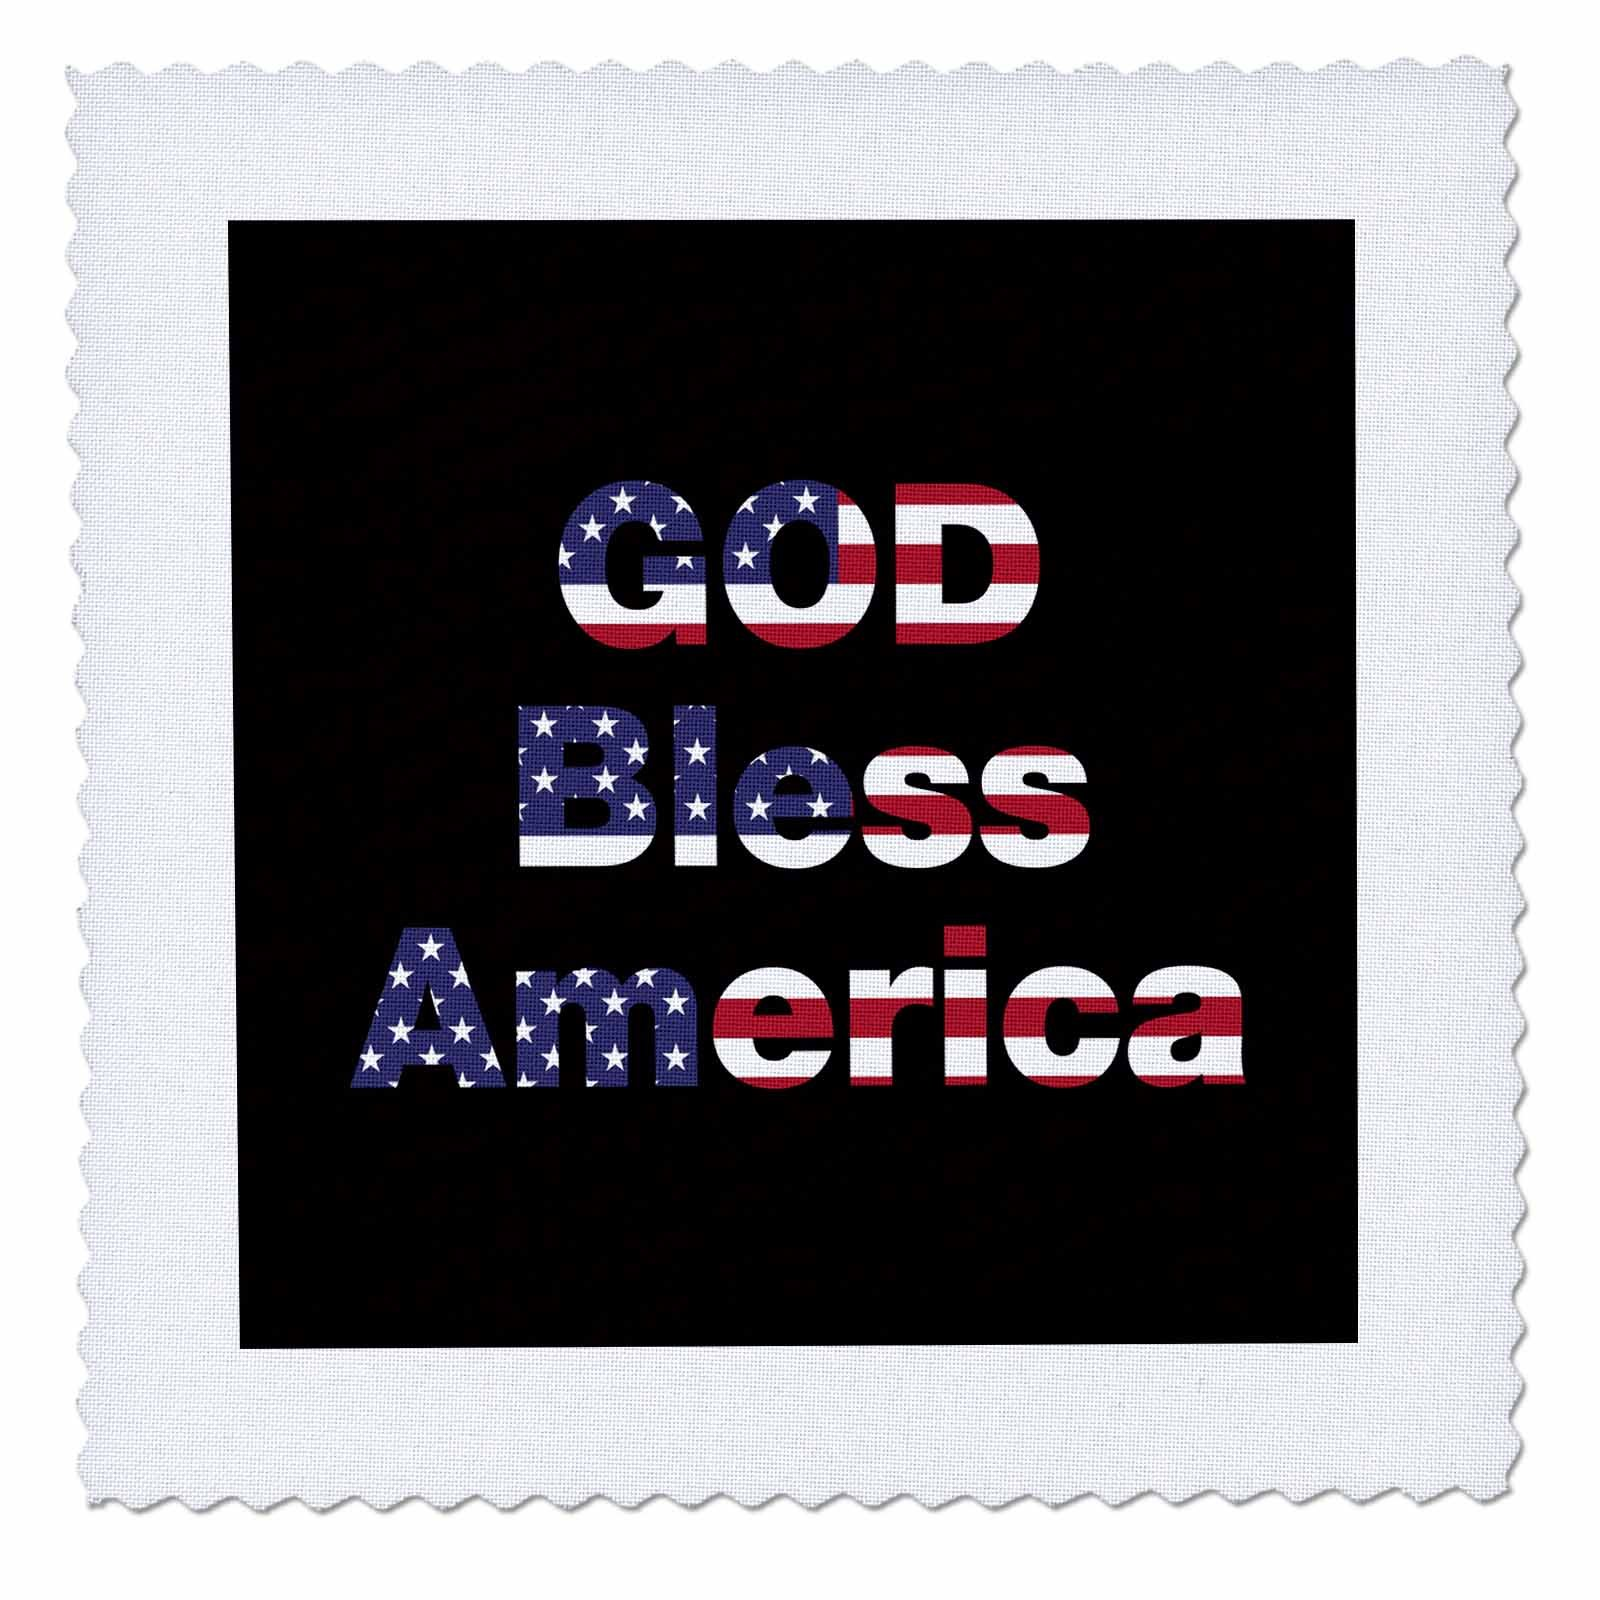 3dRose Uta Naumann Flags of the World - USA American Flag Stars and Stripes-Patriotic-God Bless America-Black - 25x25 inch quilt square (qs_268993_10) by 3dRose